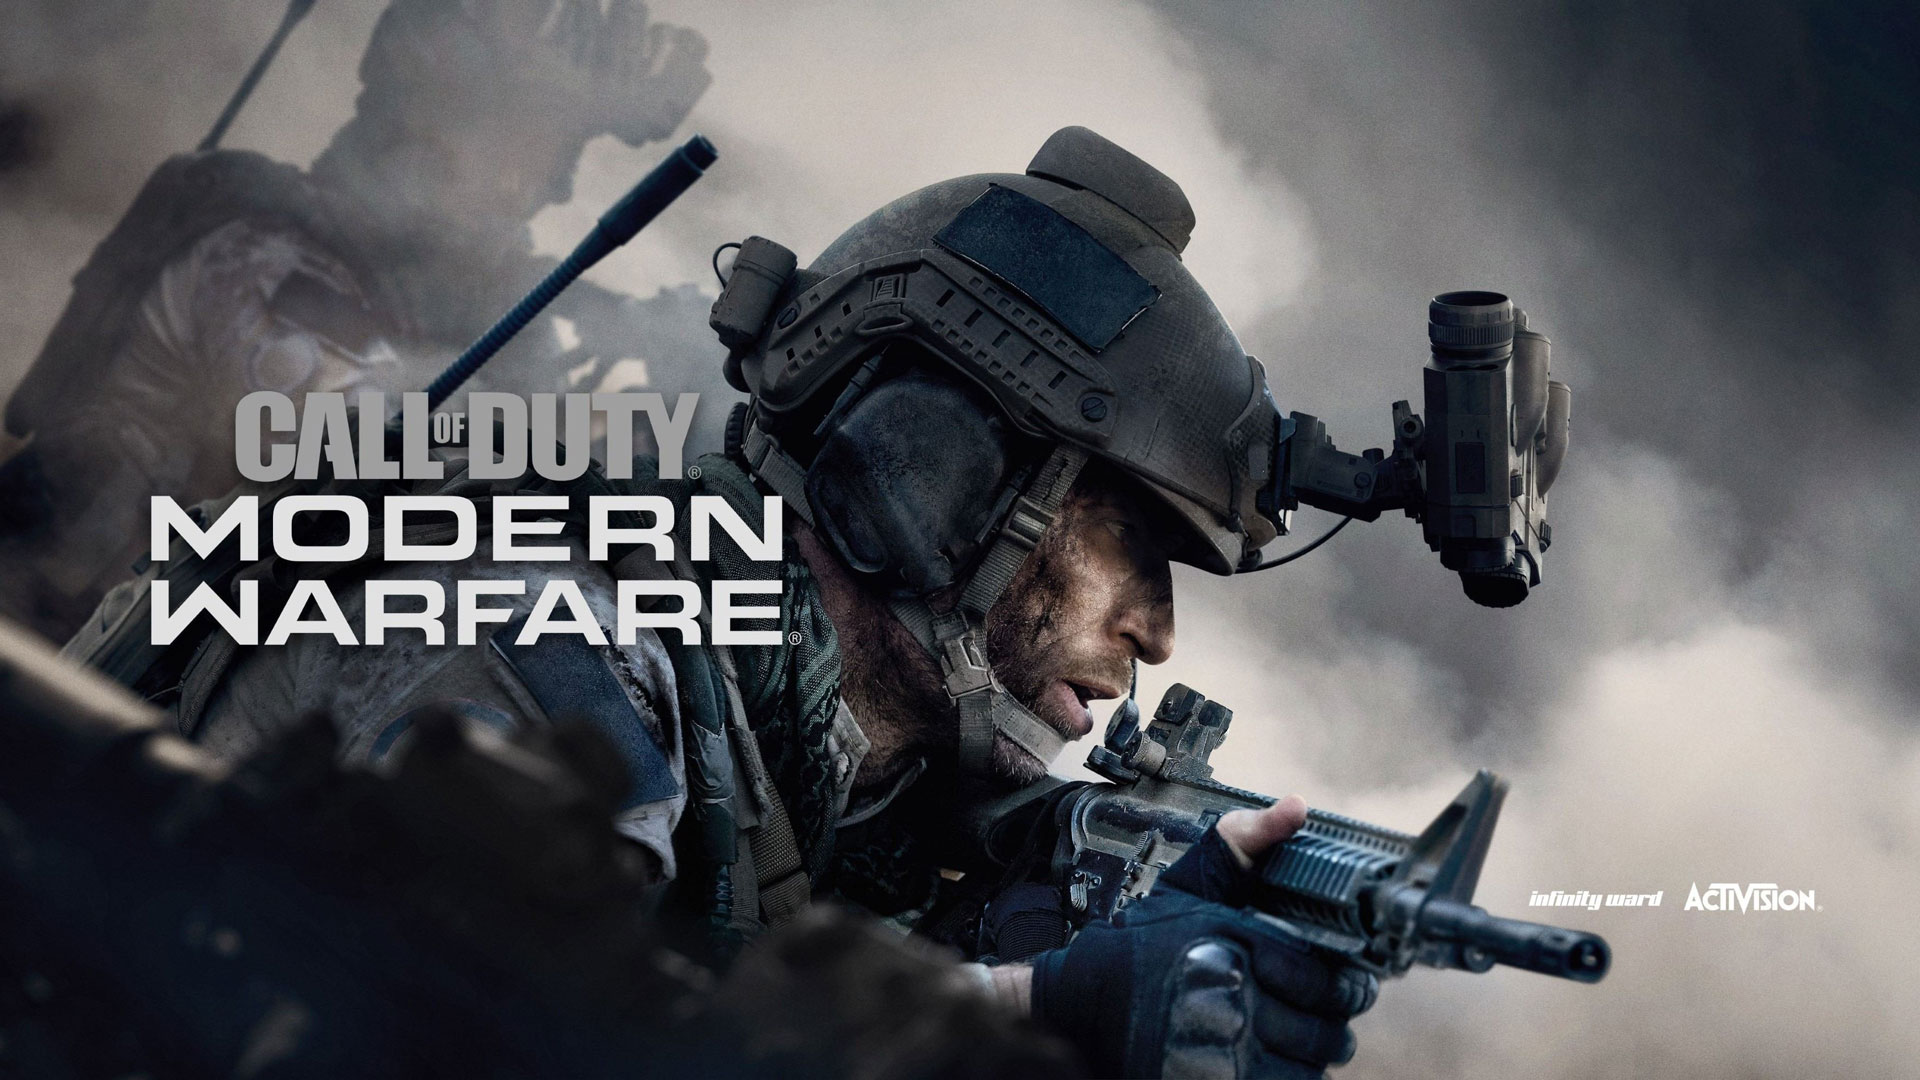 Call Of Duty Insider Claims That Next Year's Game Will Be Another Modern Warfare Title